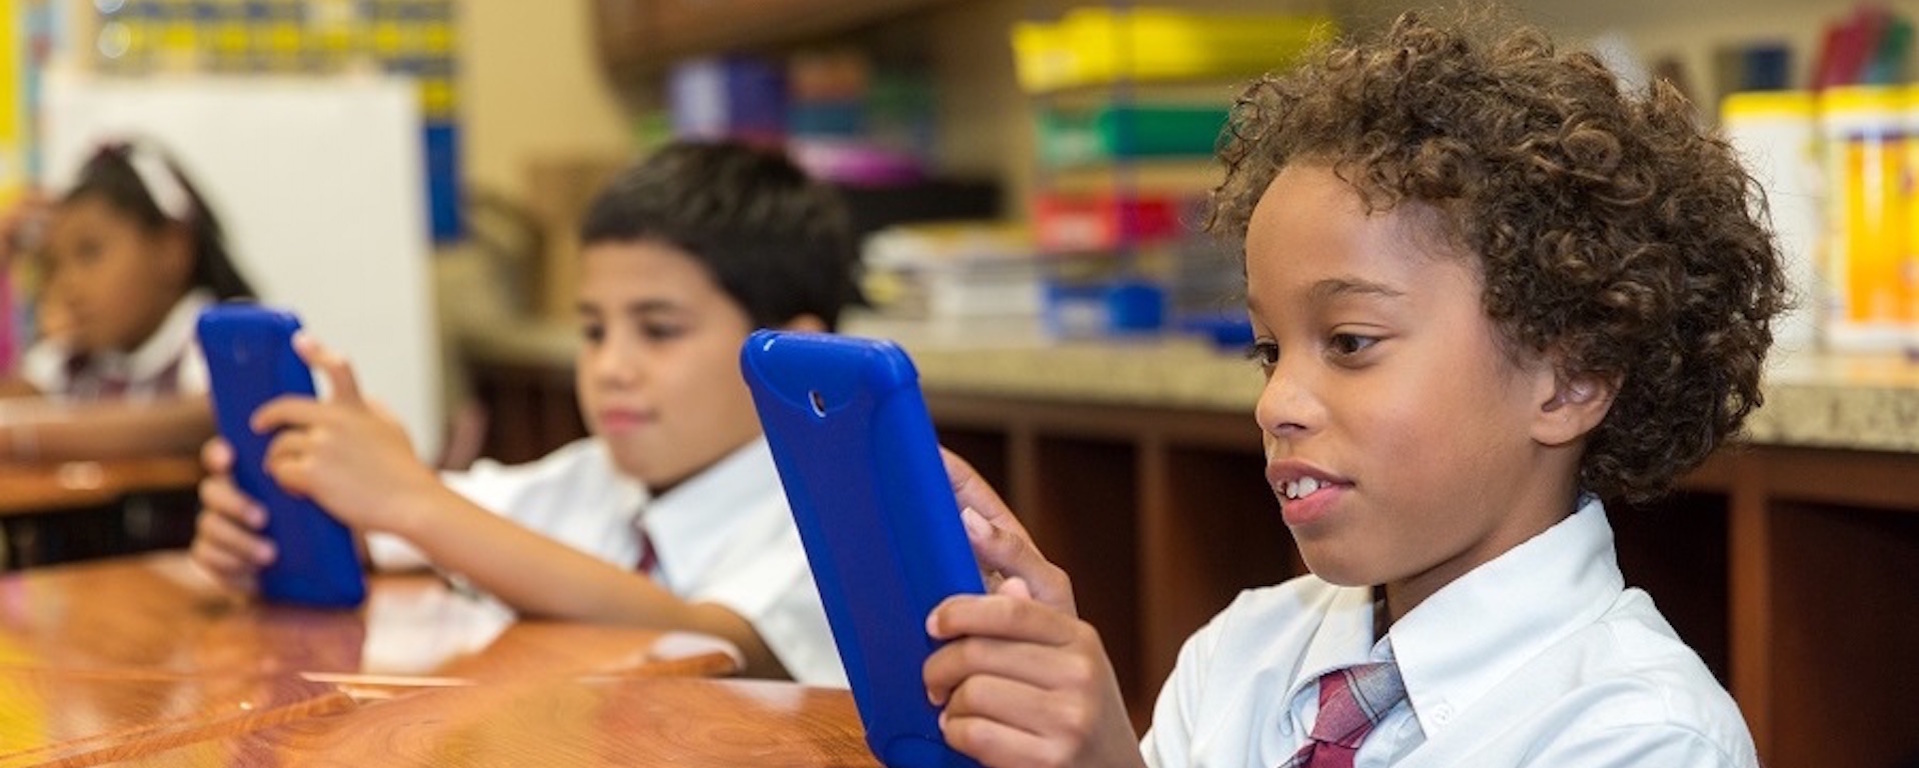 As schools become increasingly reliant on digital materials, educators are providing forward-thinking solutions to the need for wireless technology in schools.